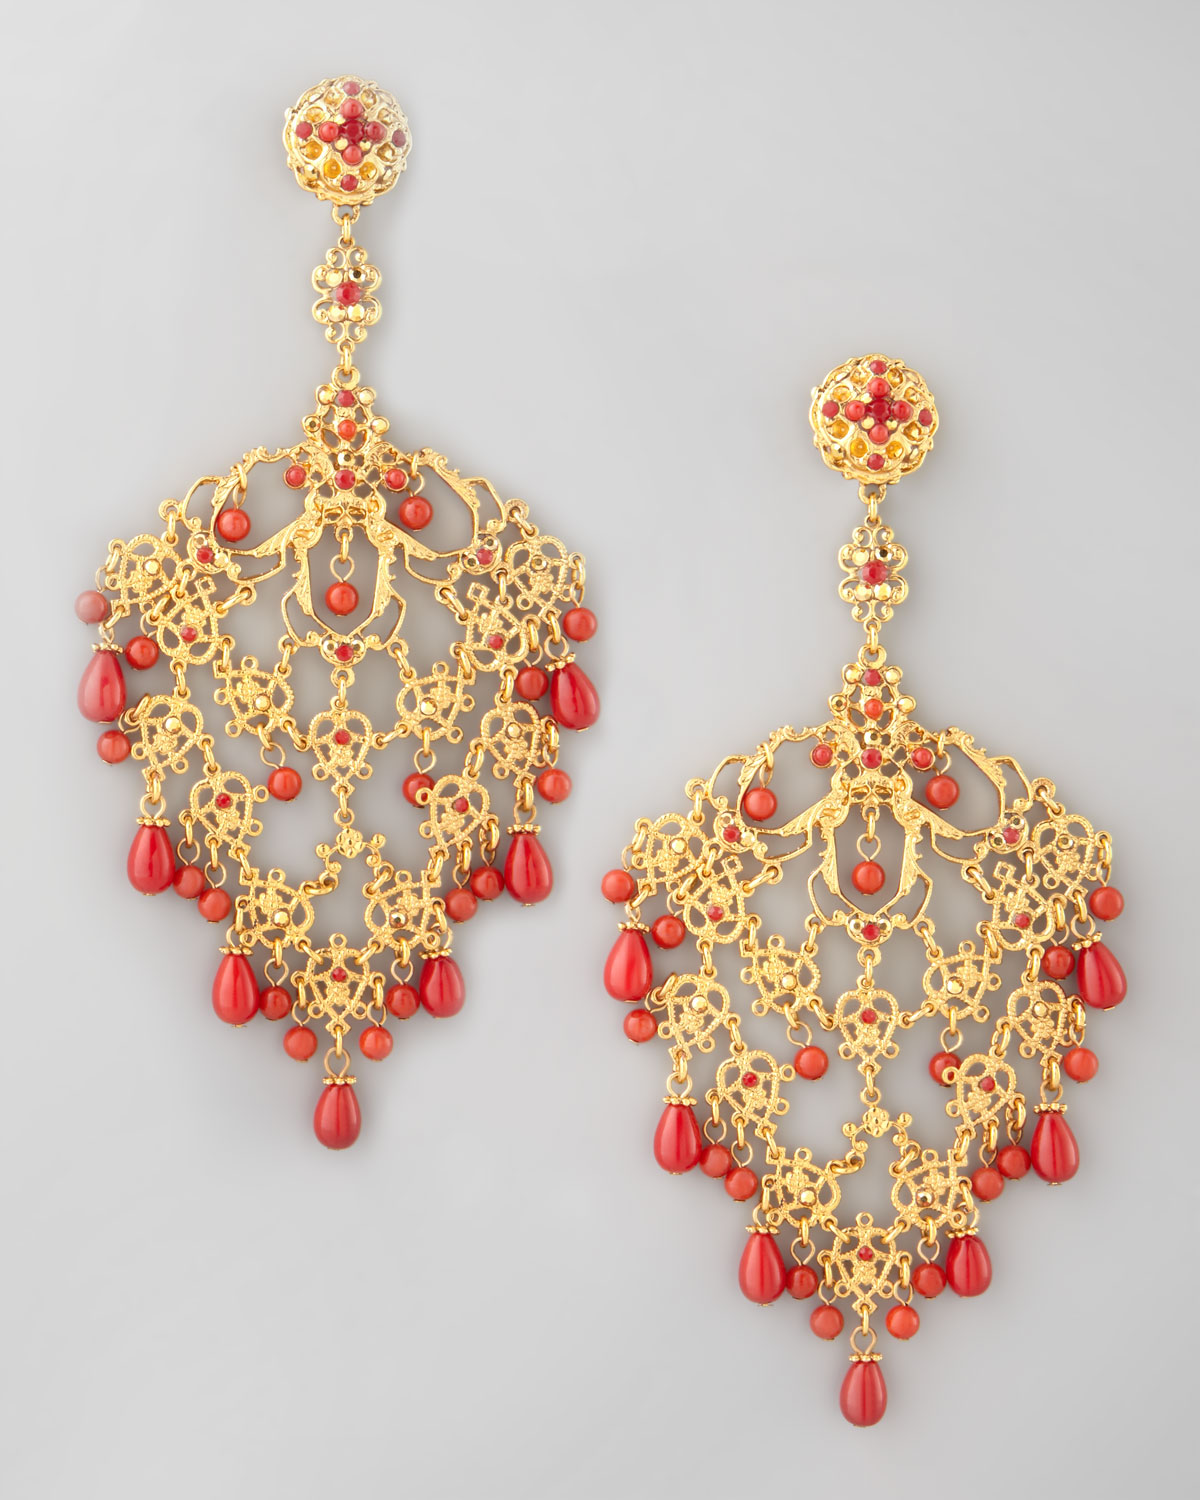 Lyst jose maria barrera filigree chandelier clip earrings in gallery aloadofball Images